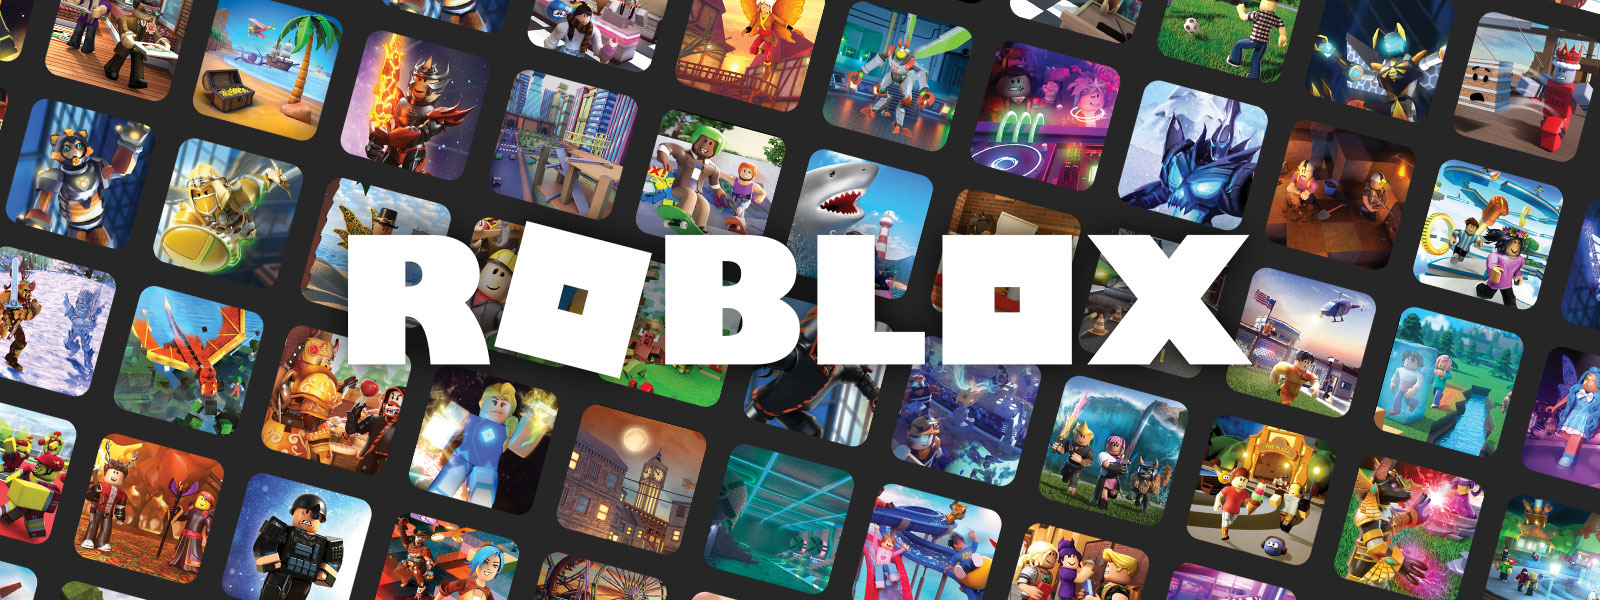 Roblox Files for IPO And Market Value Soars To $45 Billion